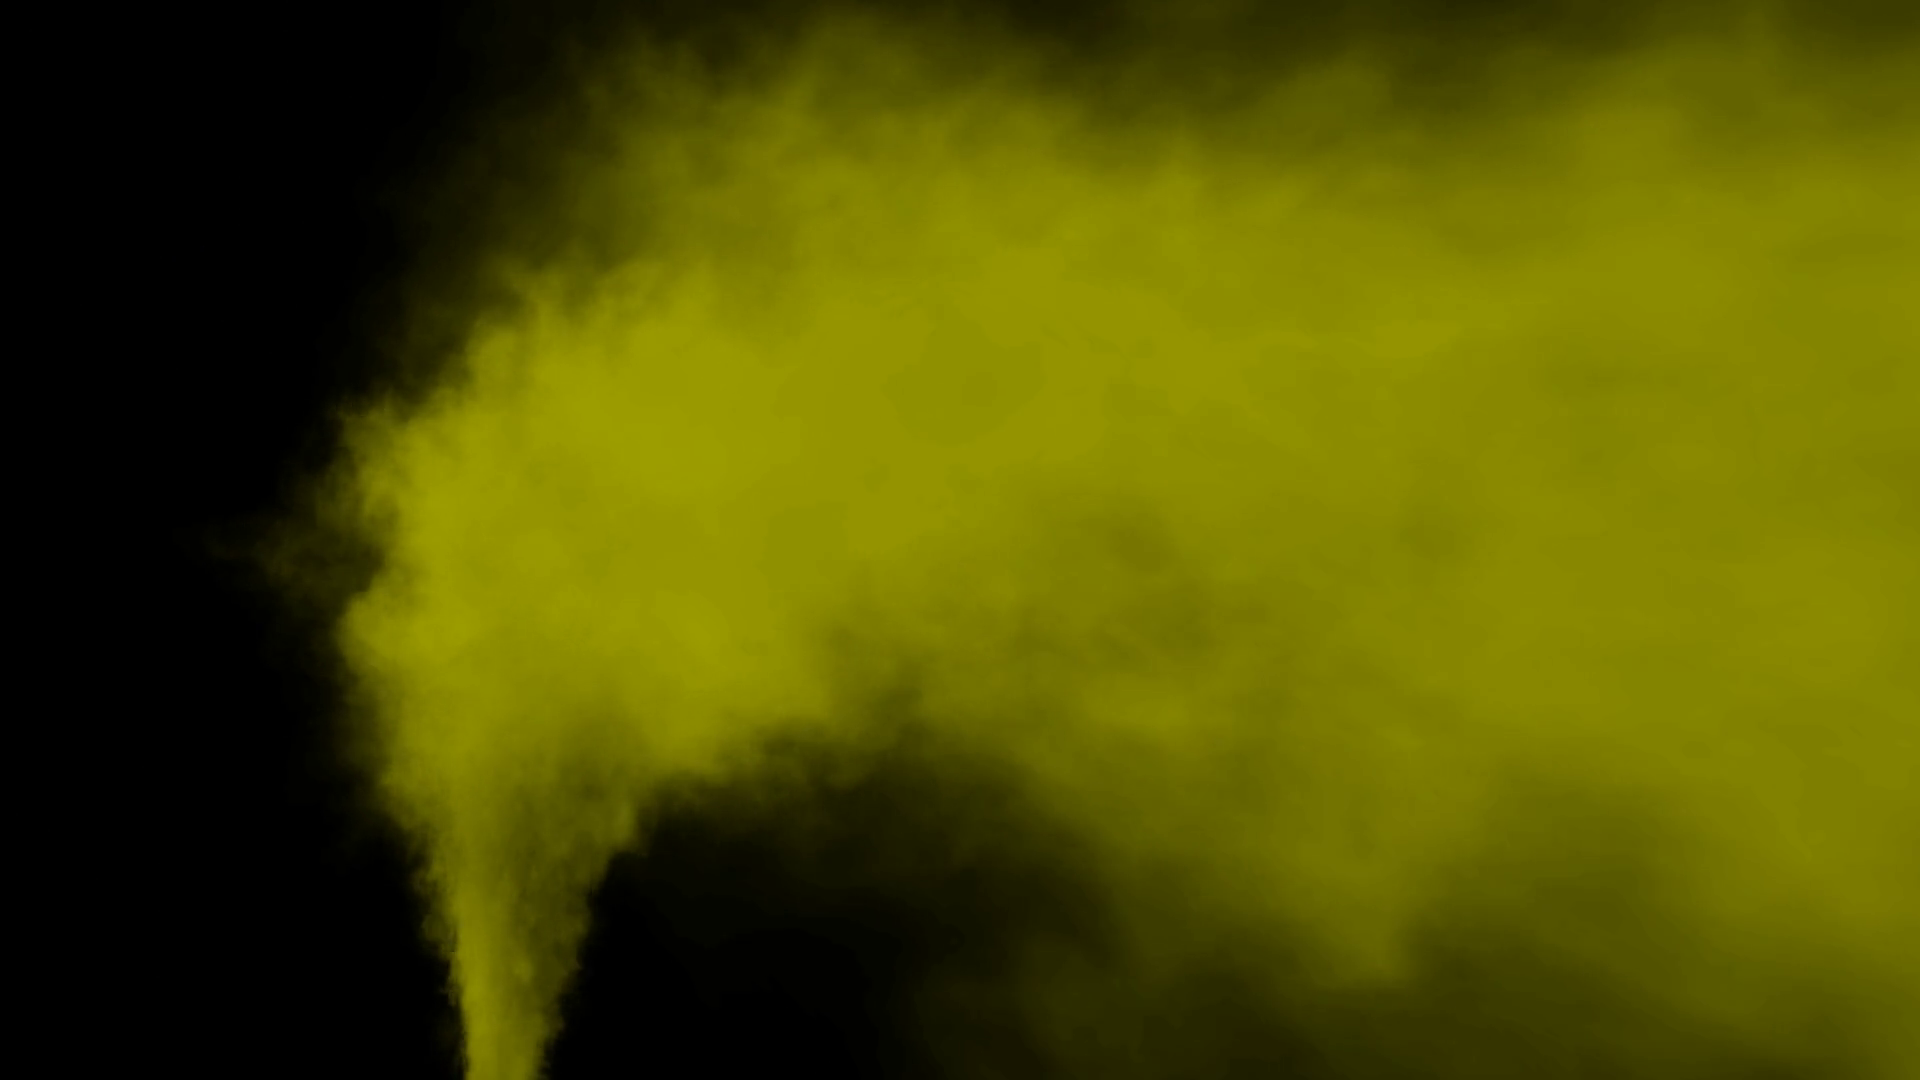 Animated stream of yellow smoke or toxic gas drifting to the right ...